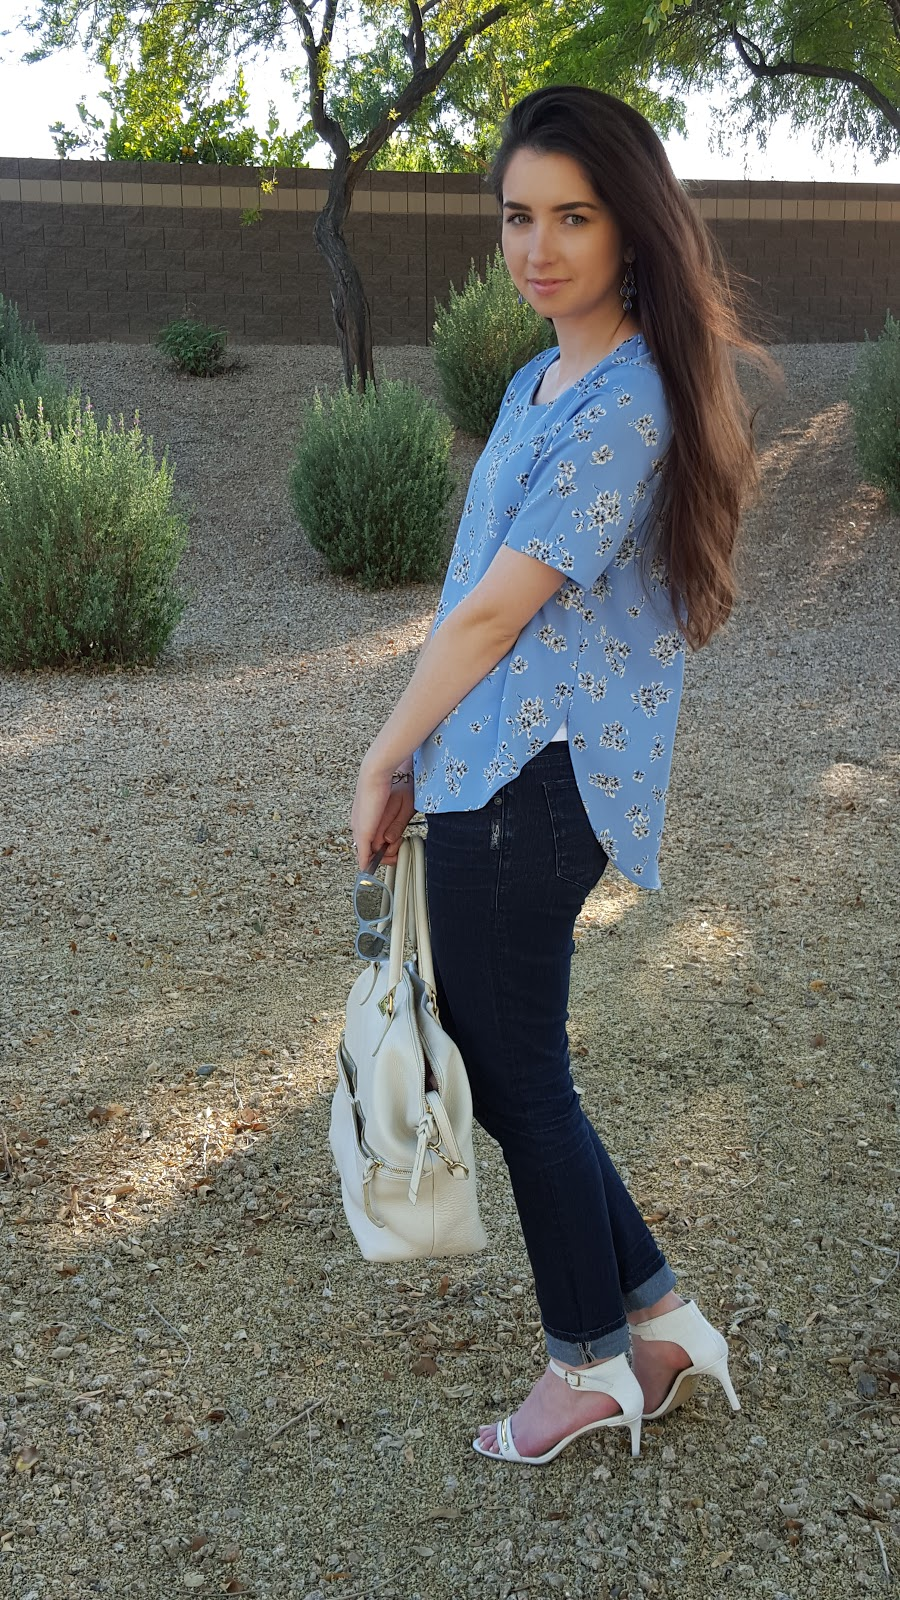 easy Spring outfit- short sleeve floral top, jeans, and sandals